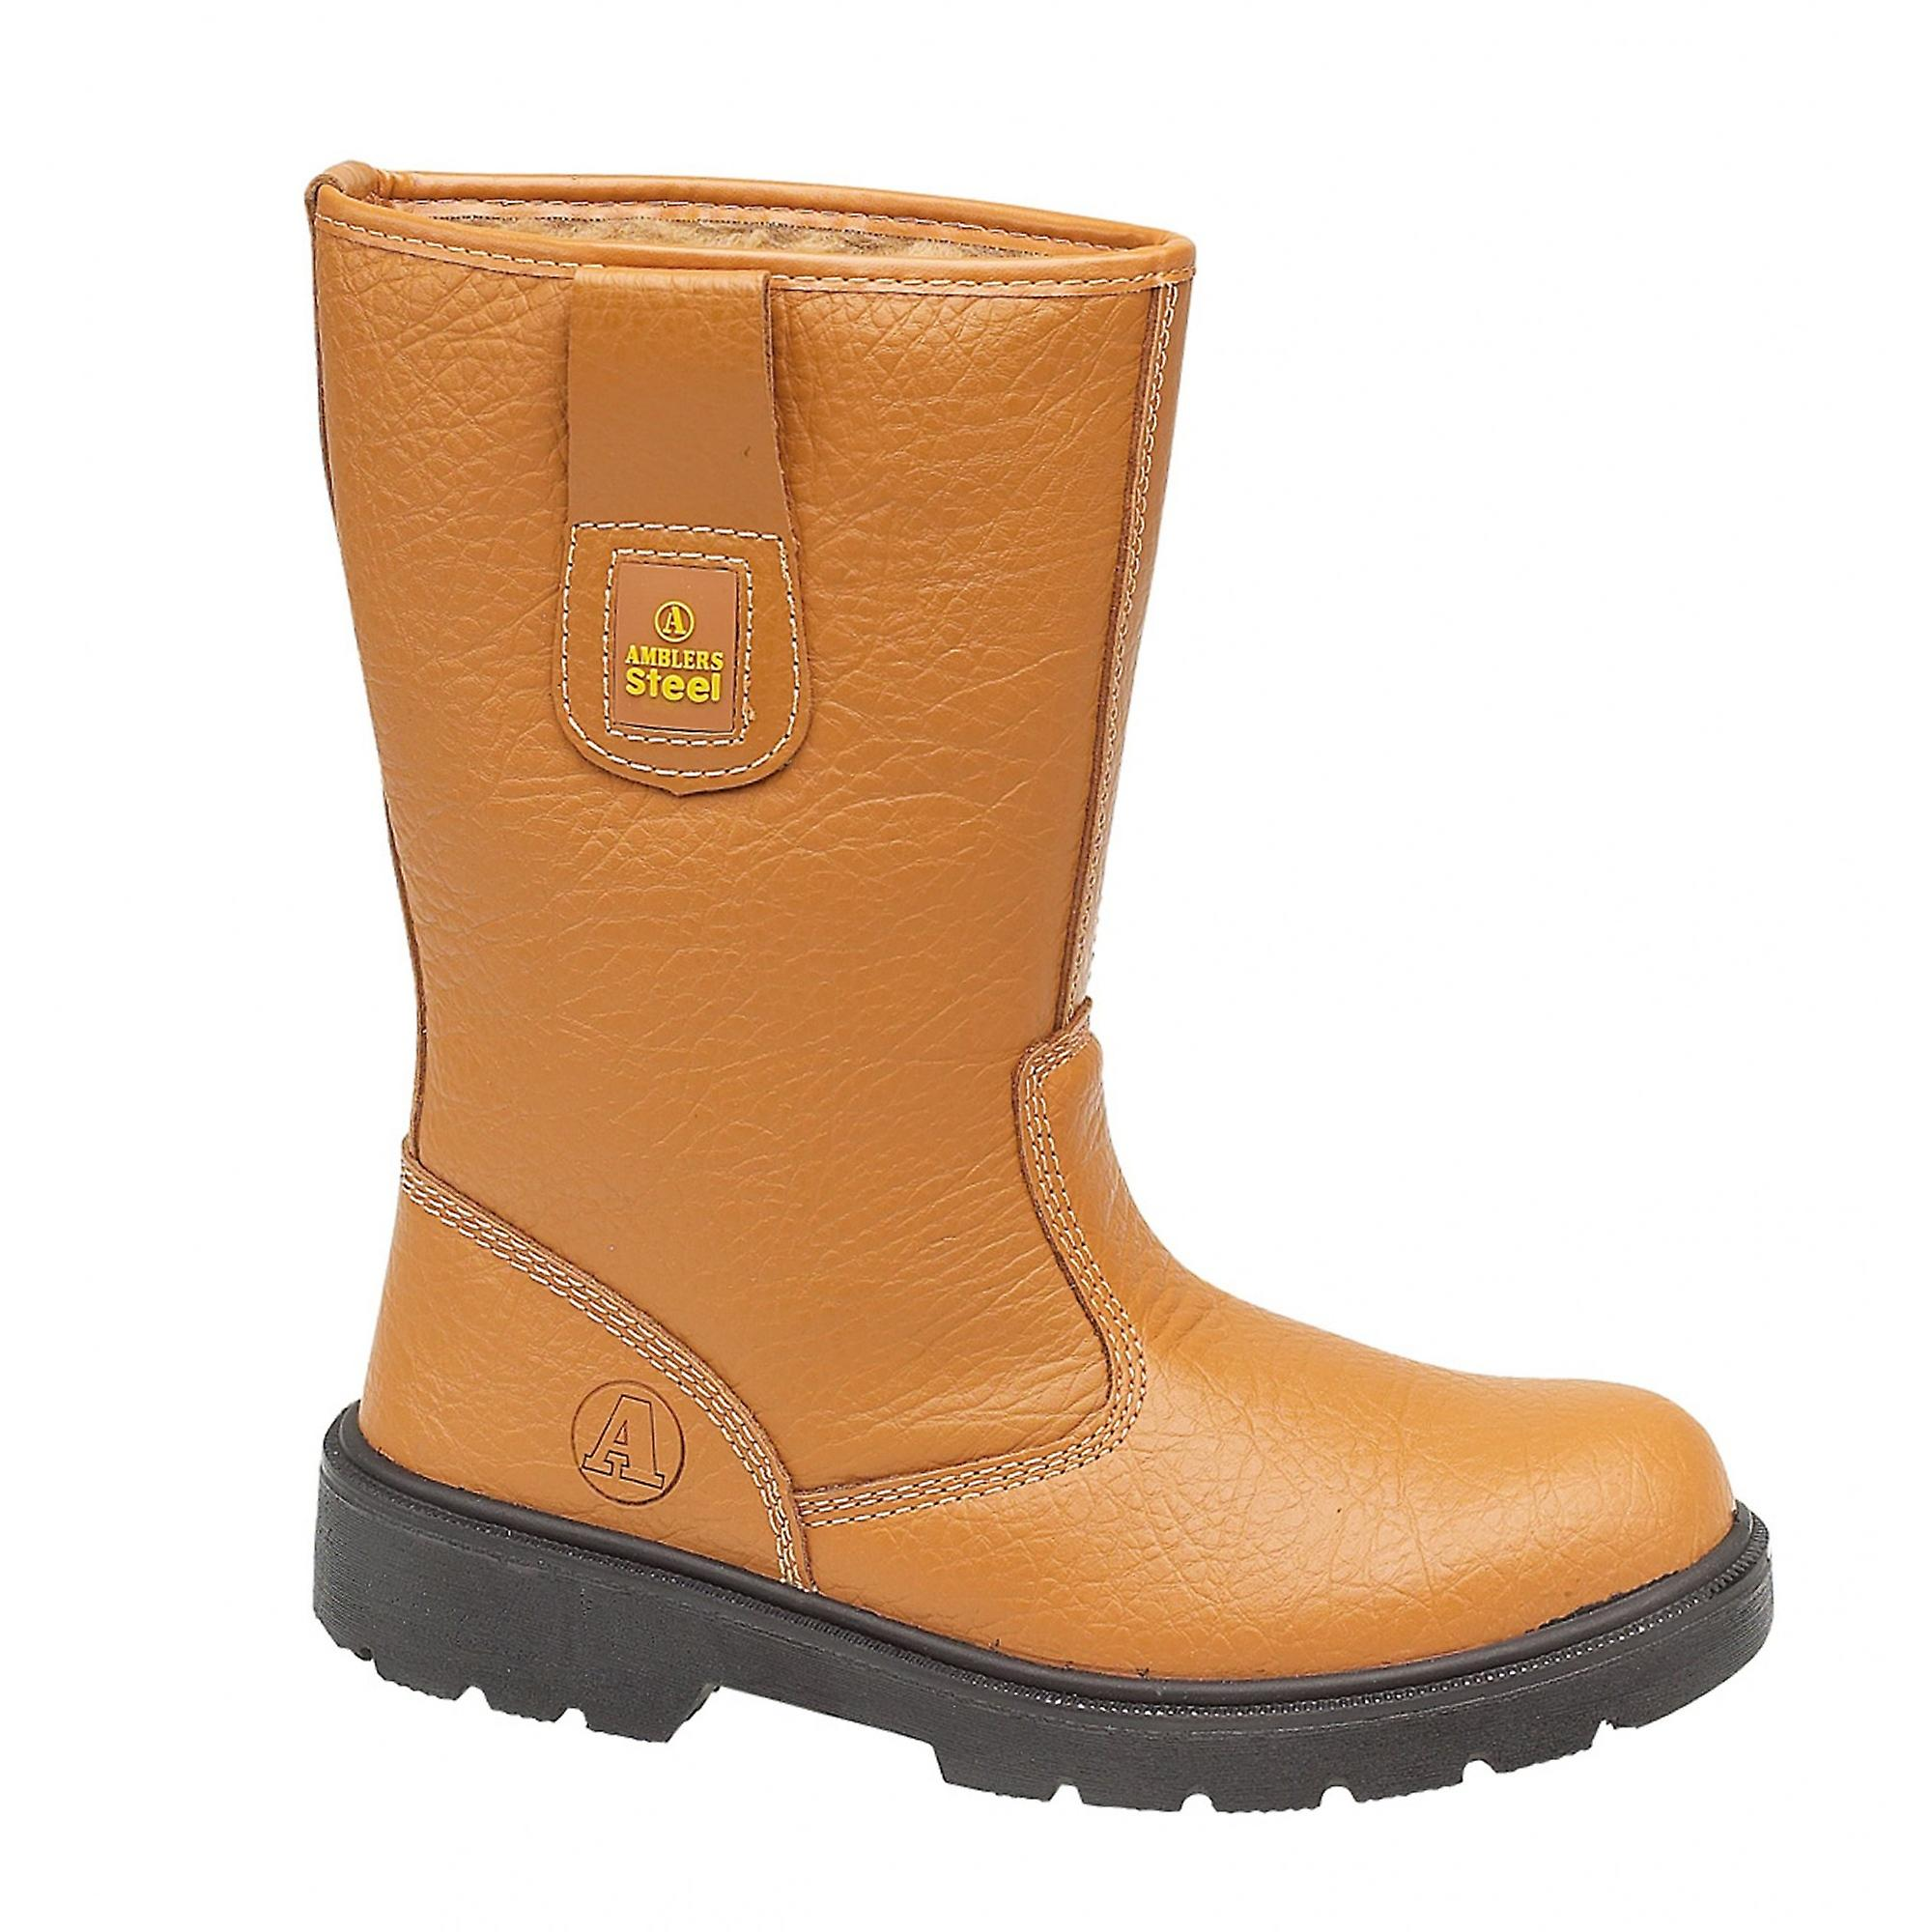 ff9197de5fc Amblers Safety FS124 Safety Rigger Boot / Mens Boots